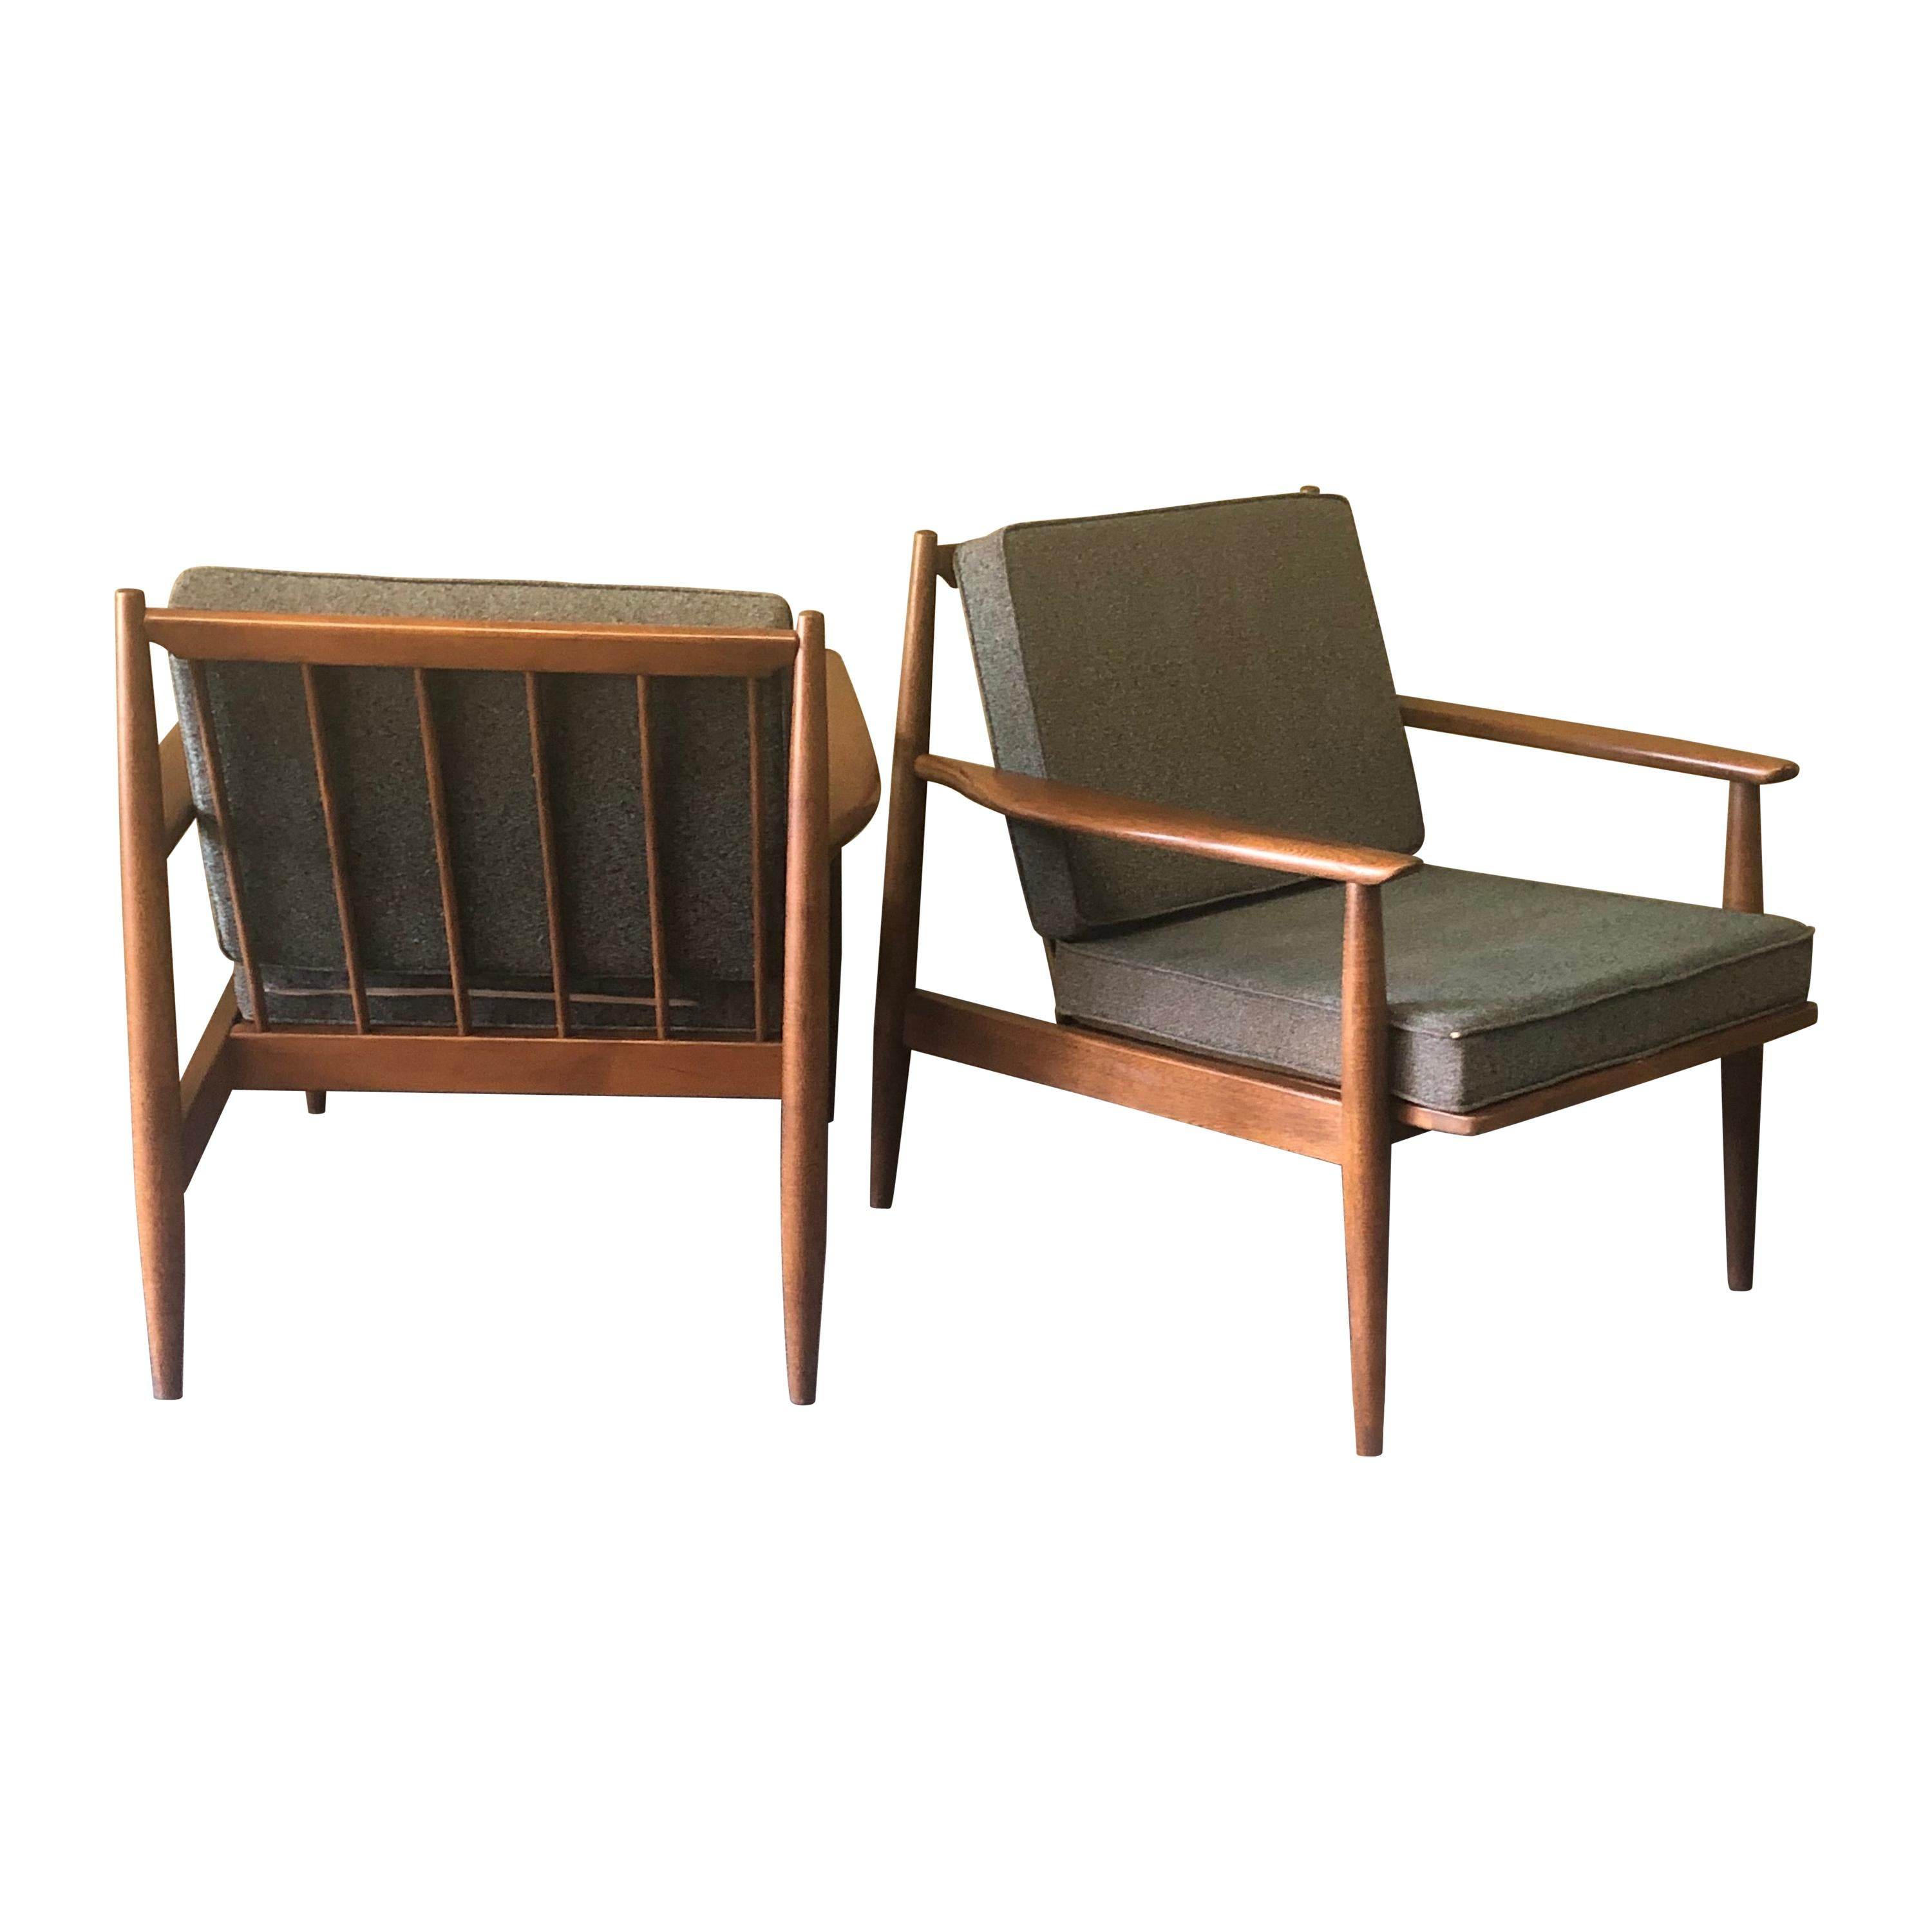 Pair of Midcentury Walnut Lounge Chairs by Viko Baumritter for Baumritter